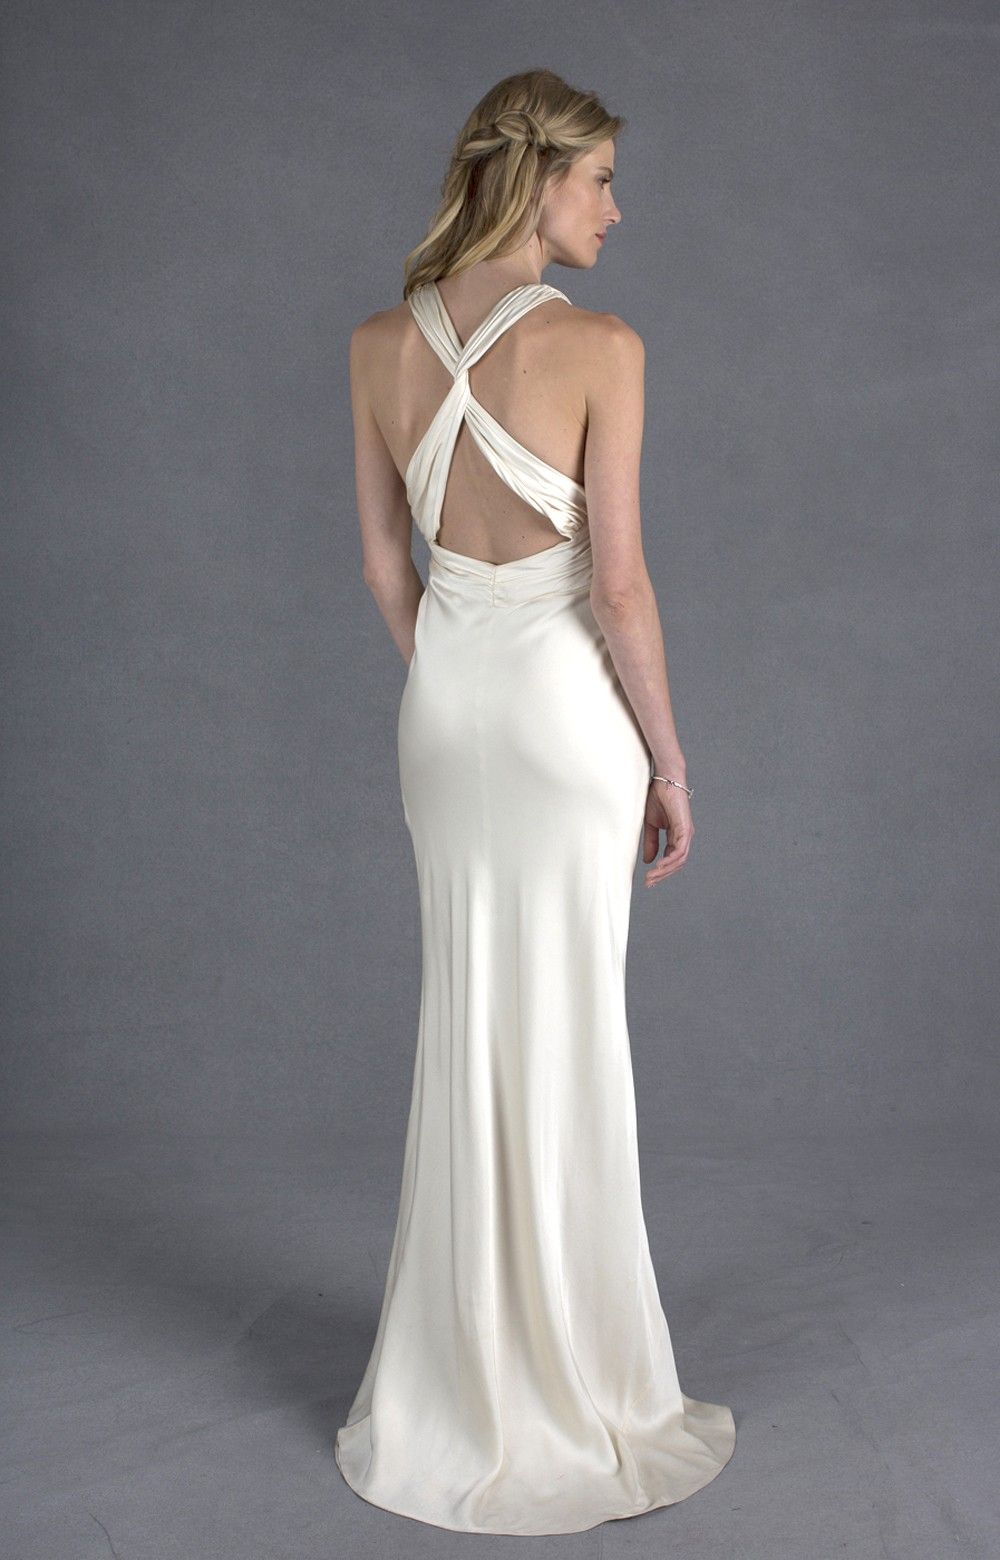 Lia By Nicole Miller Available At The Bridal Atelier Www Thebridalatelier Au